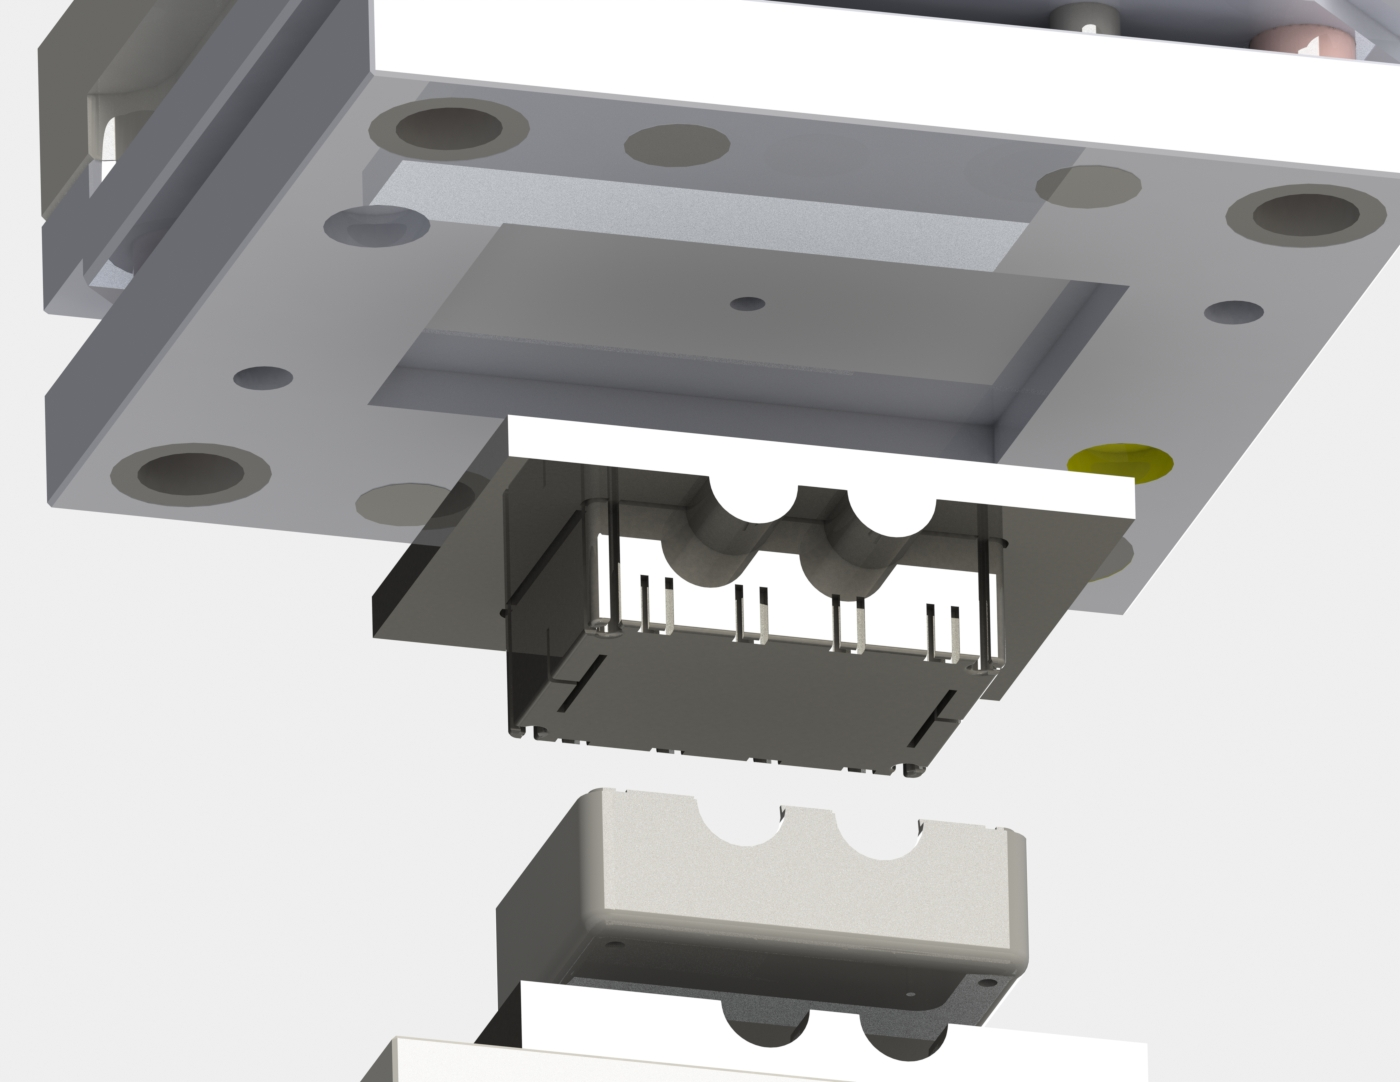 mold-tool-assembly-of-motion-sensing-plastic-device-core-plate